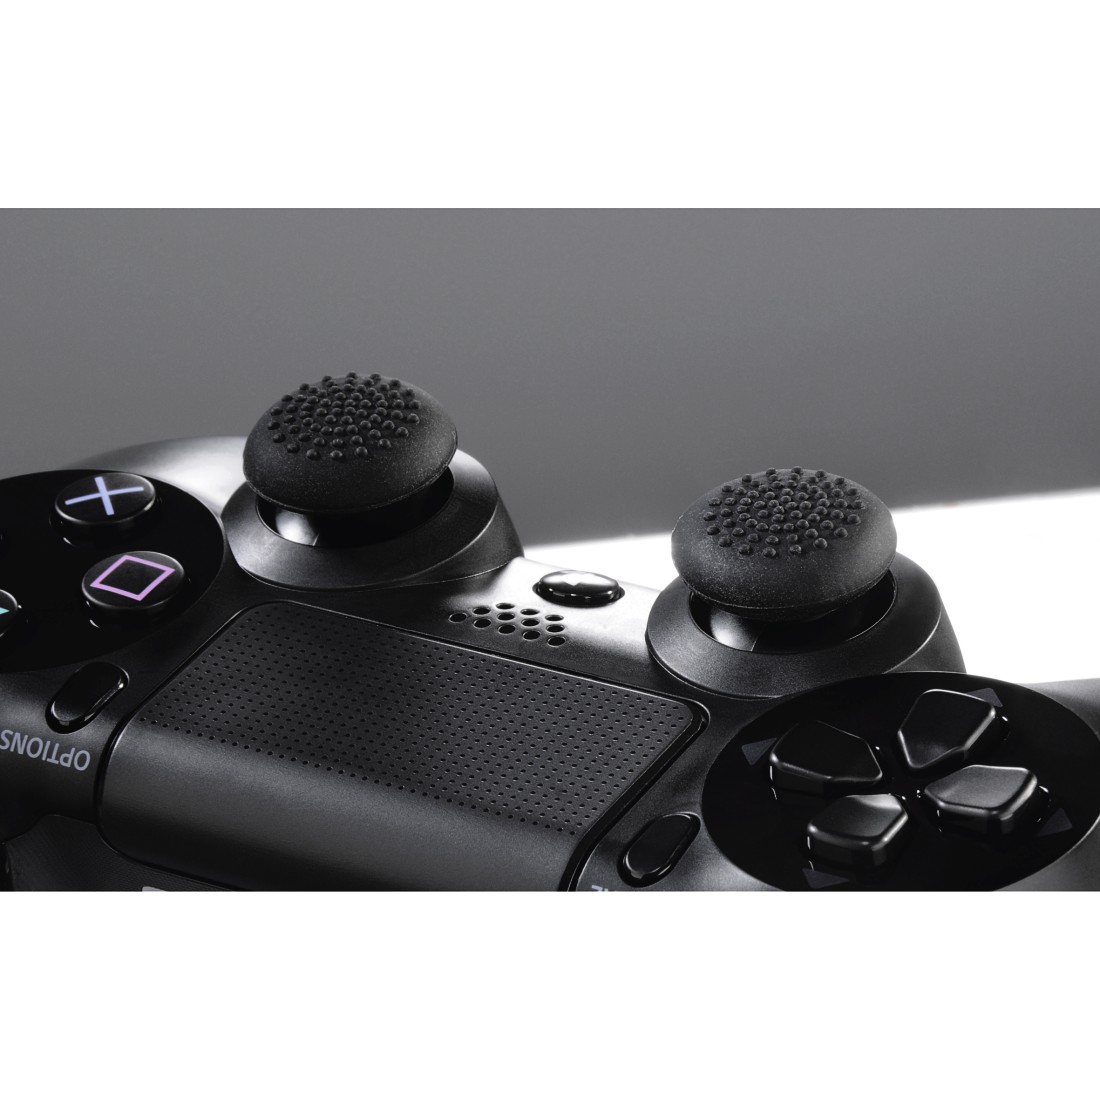 awx2 High-Res Appliance 2 - Hama, 8-in-1 Control Stick Attachments Kit for PS4